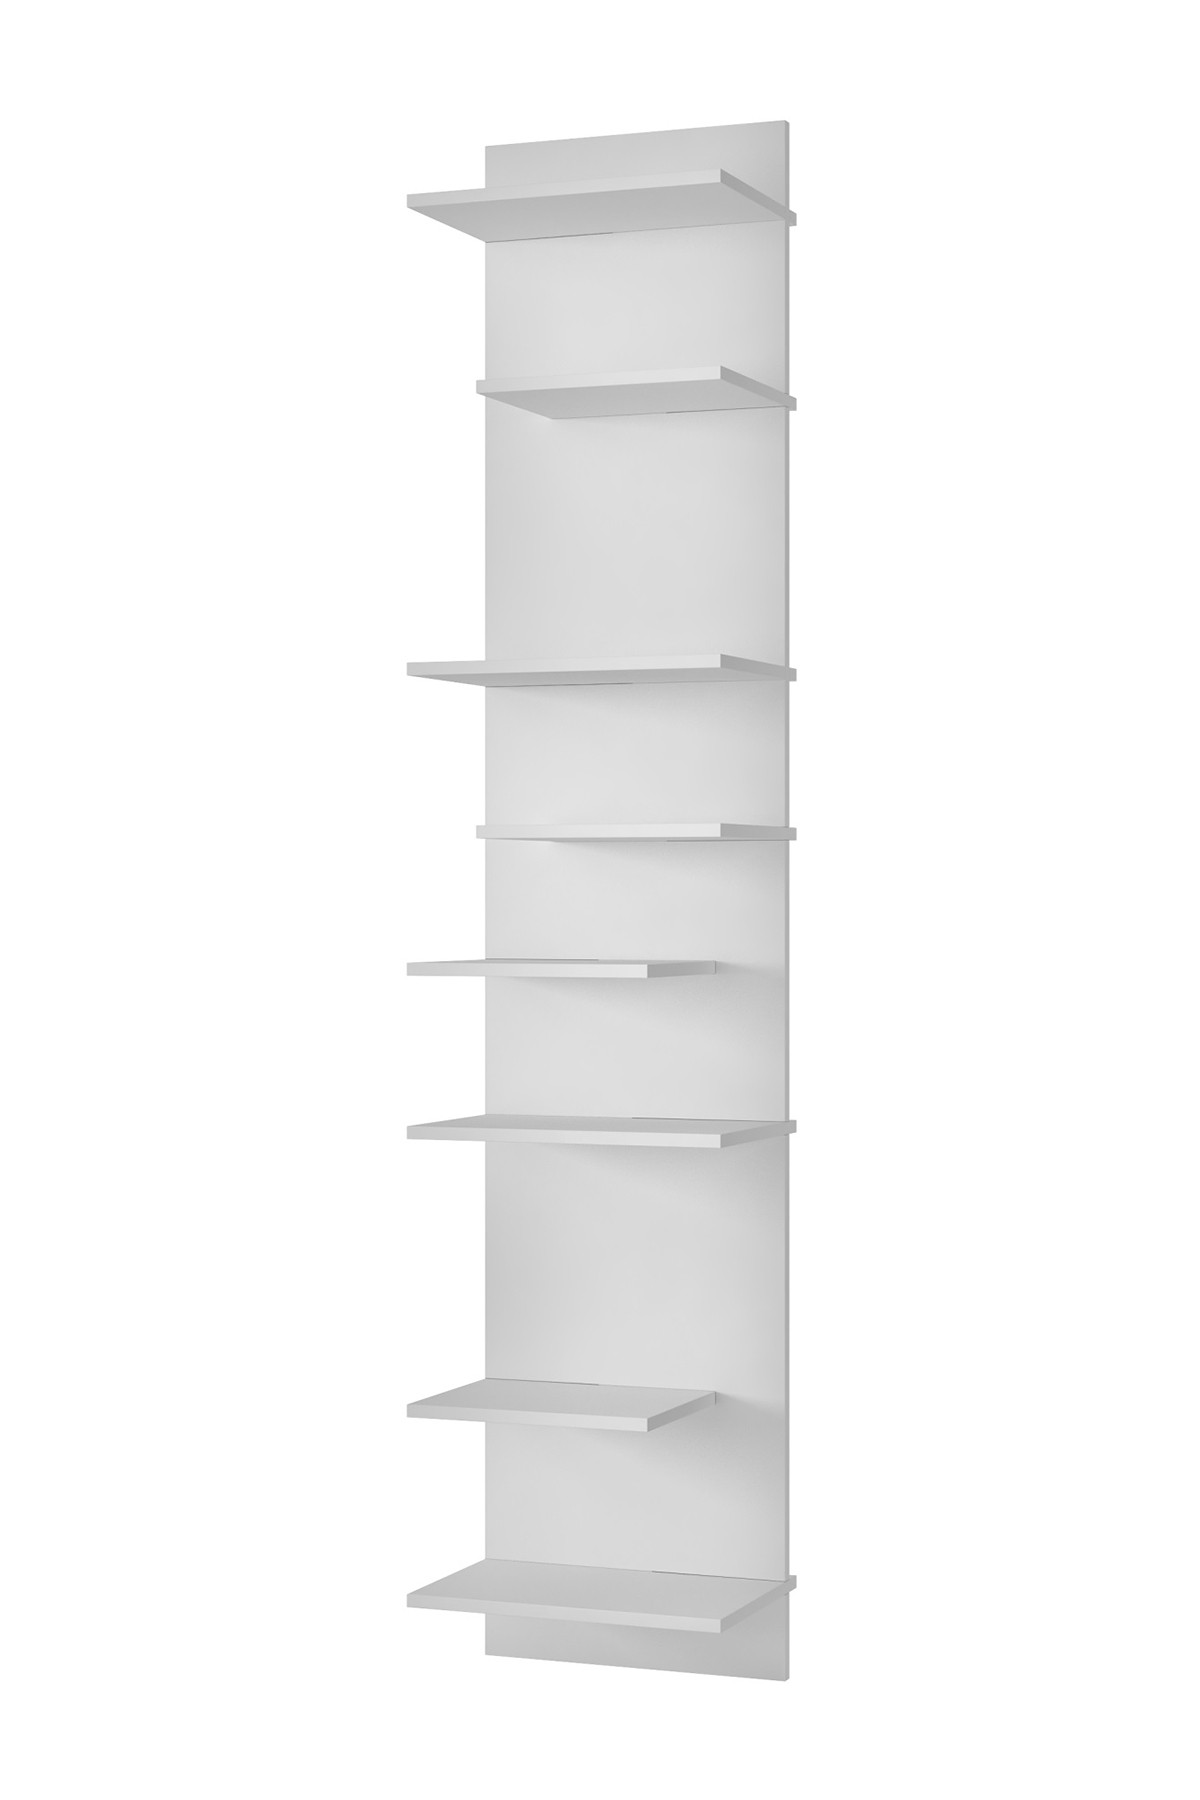 manhattan comfort white nelson floating shelf panel nordstrom shelves for shoes cube command shower hooks steel brackets fold wall desk ikea shoe rack unit ideas office best